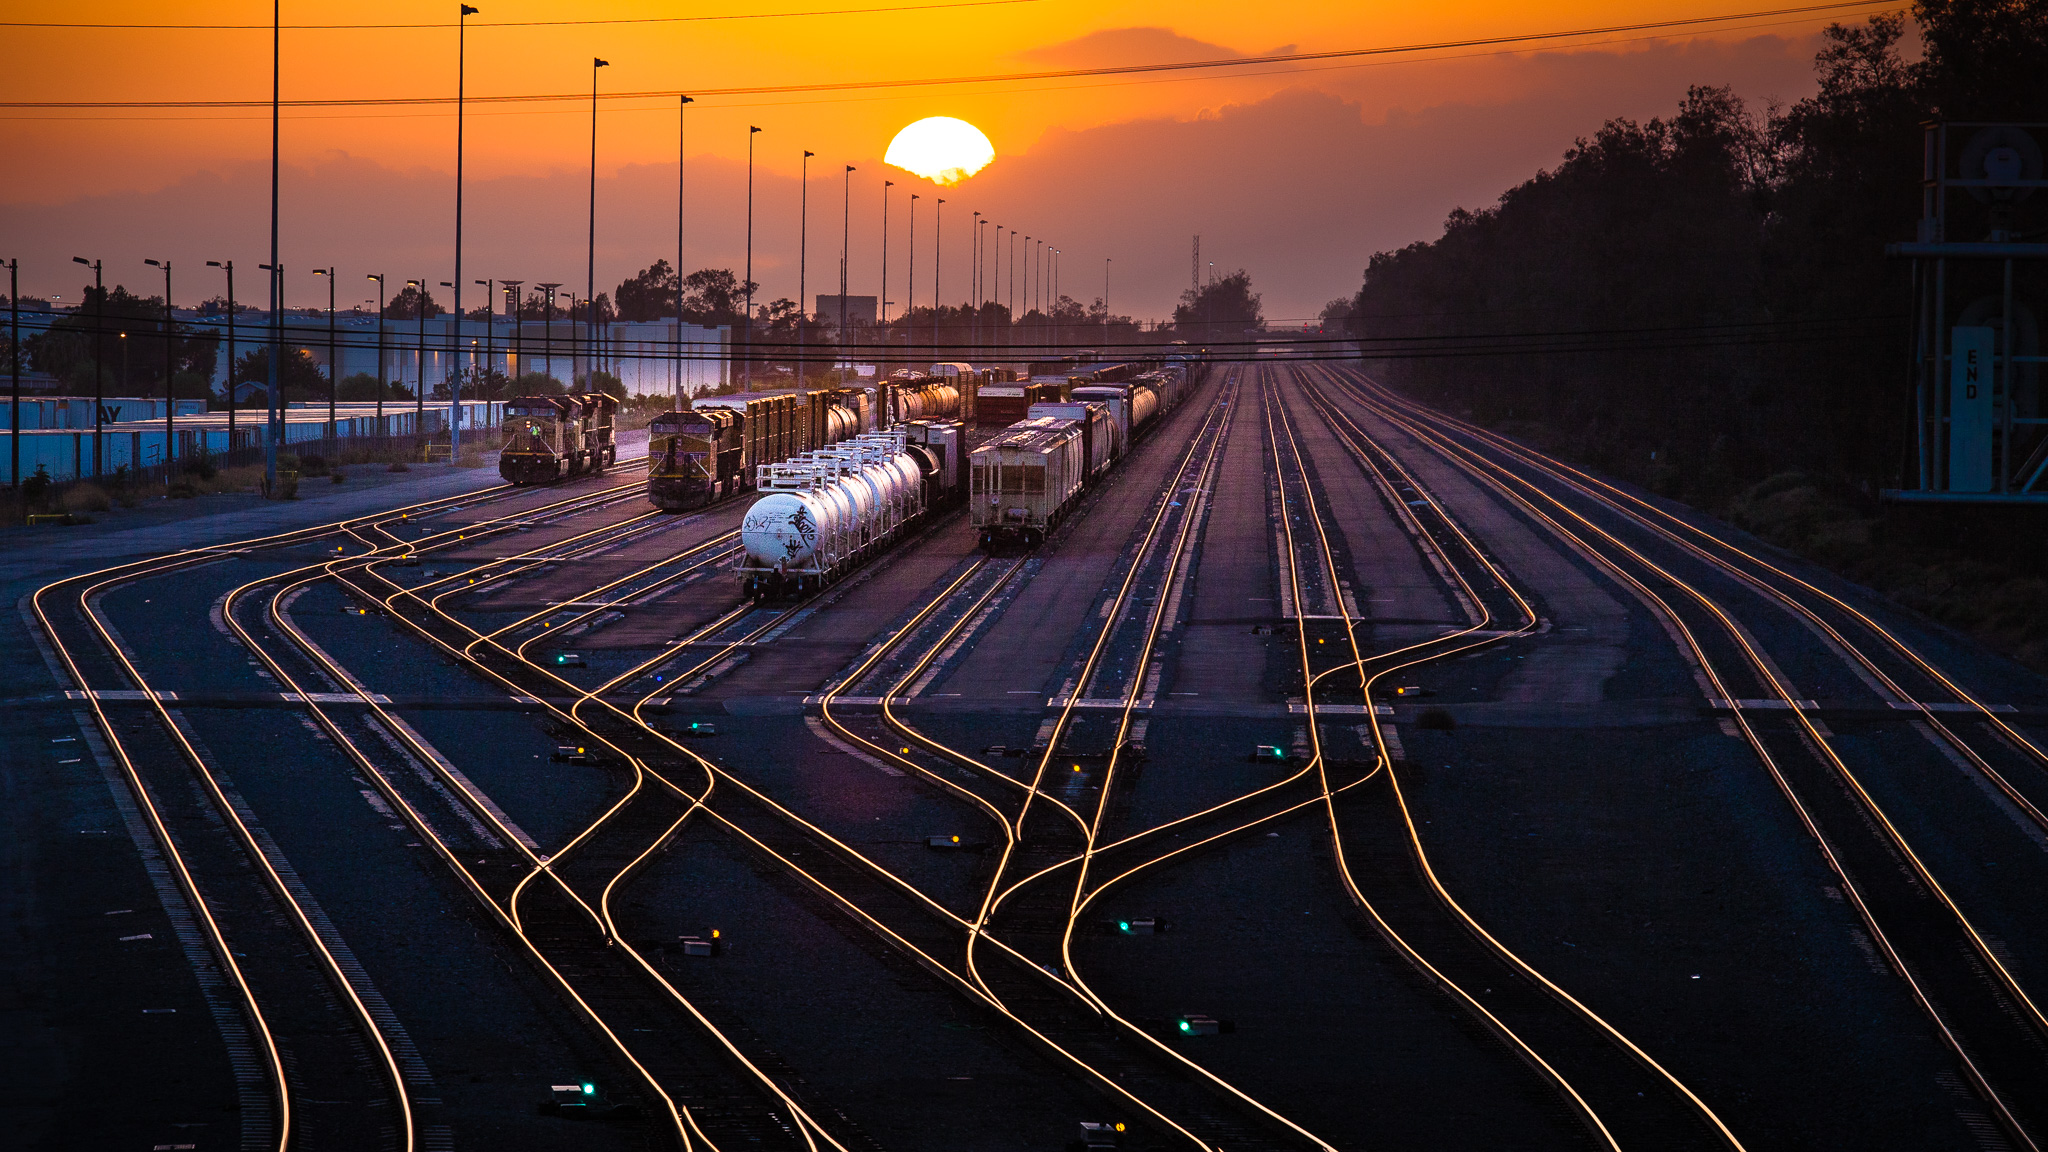 Rail Yard At Sunset